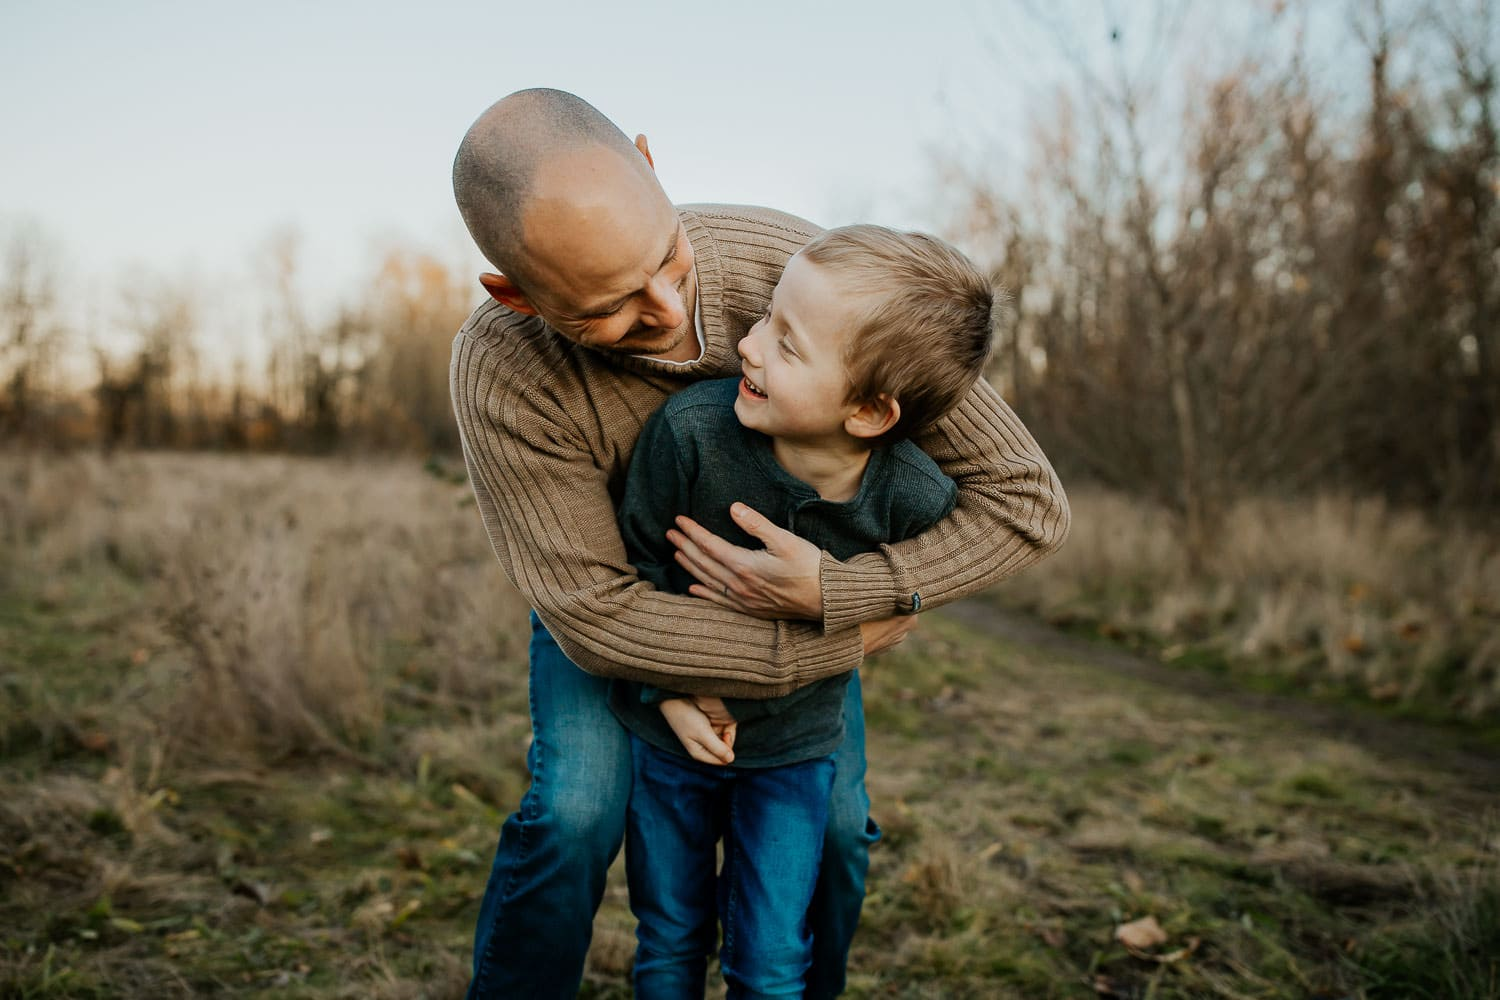 best portland photographer - Dad and son laughing together